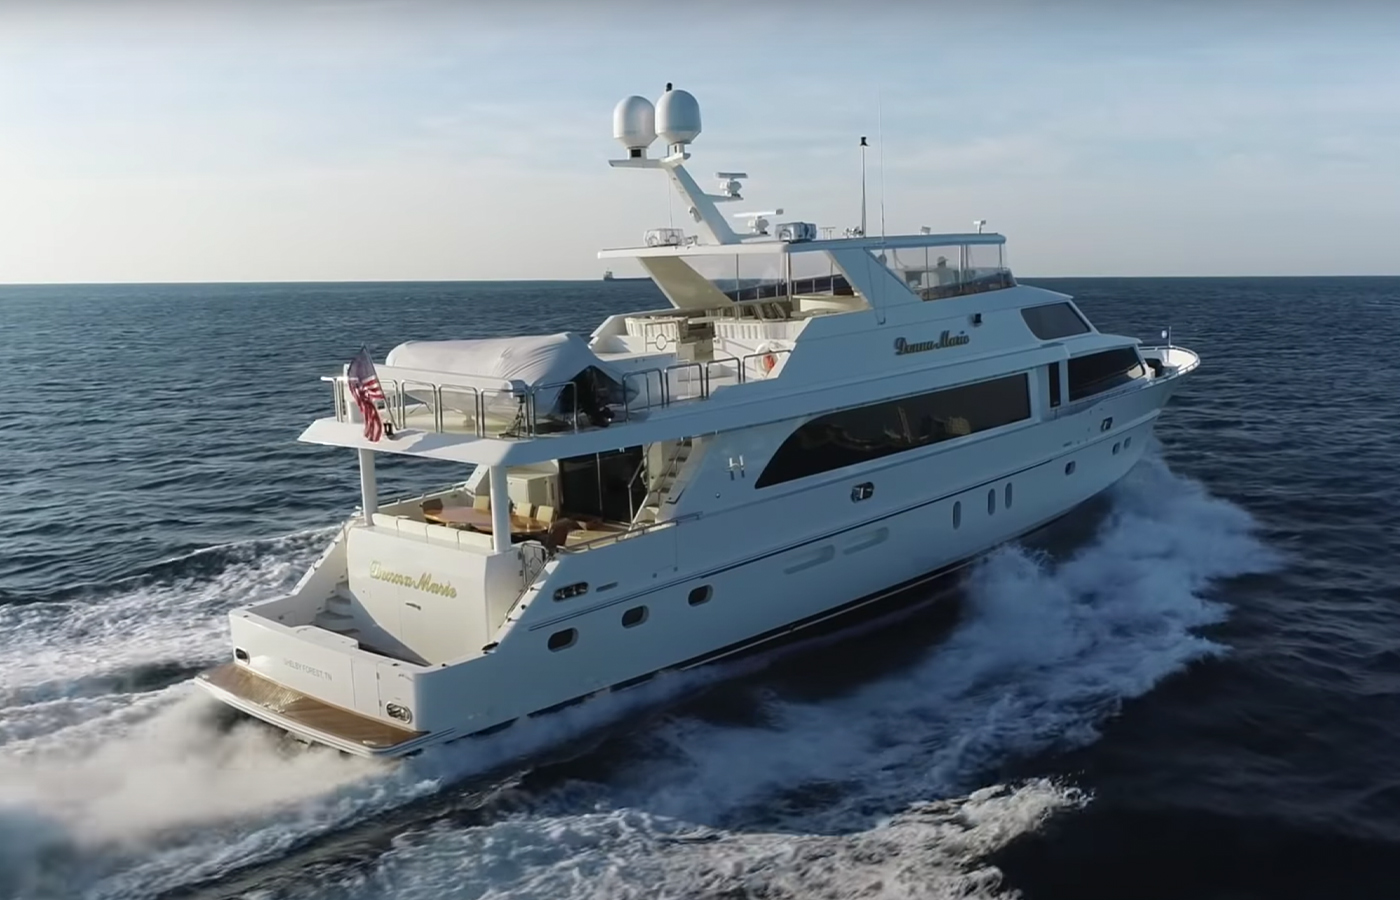 Hargrave 114 Superyacht Highlight [Boat Review + Video]